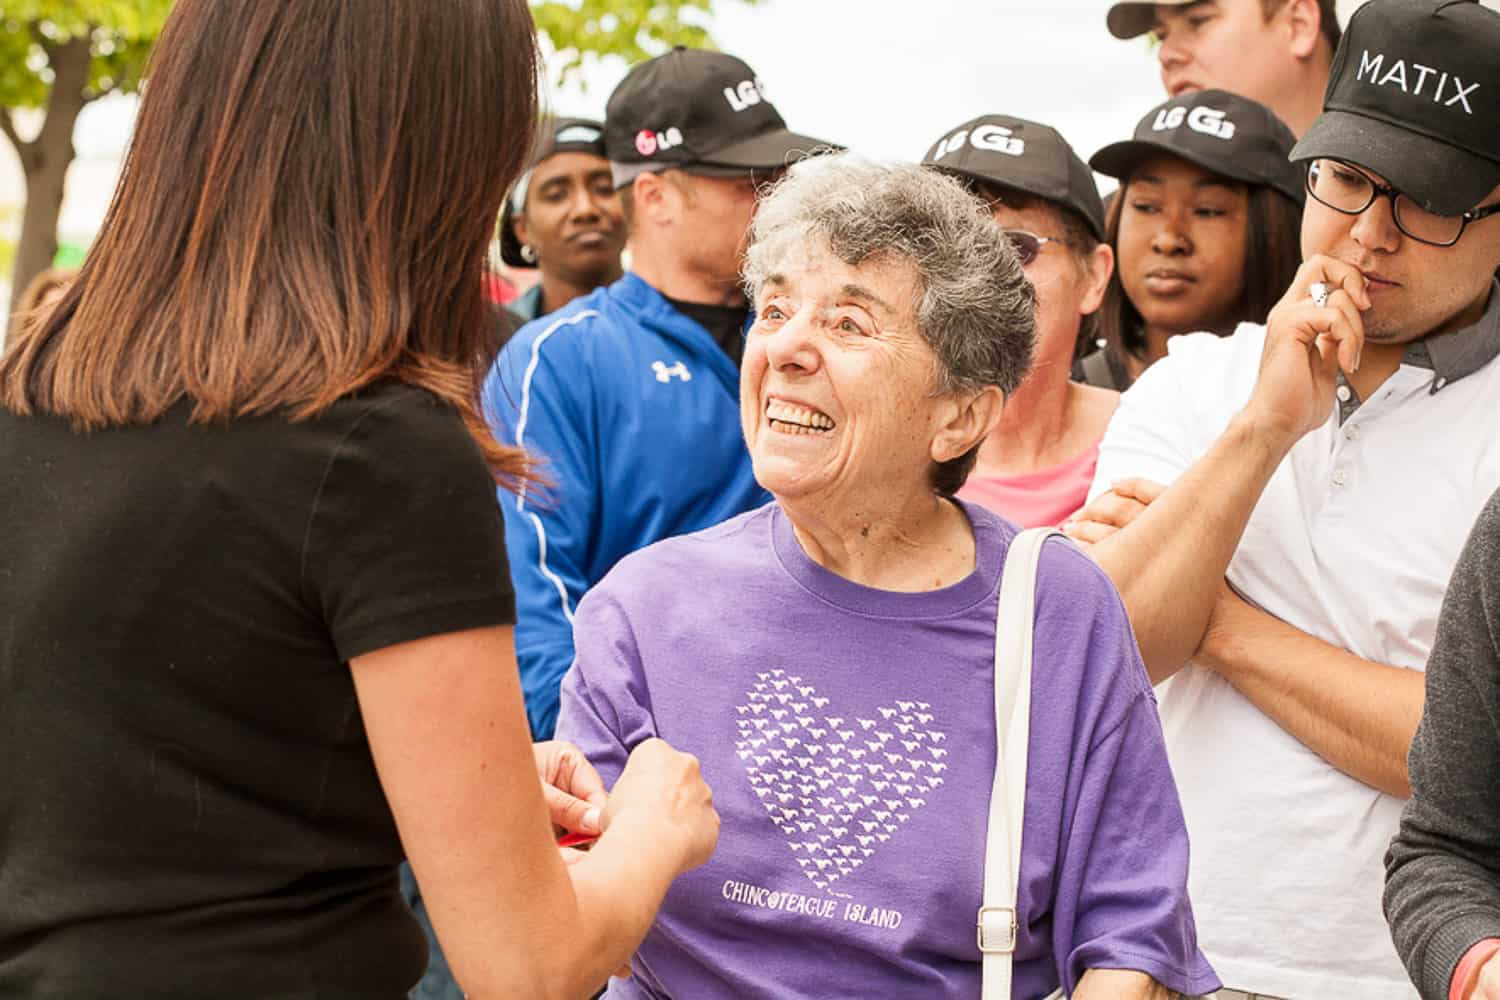 Event photograph of a staff member applying a bracelet to a person in line.